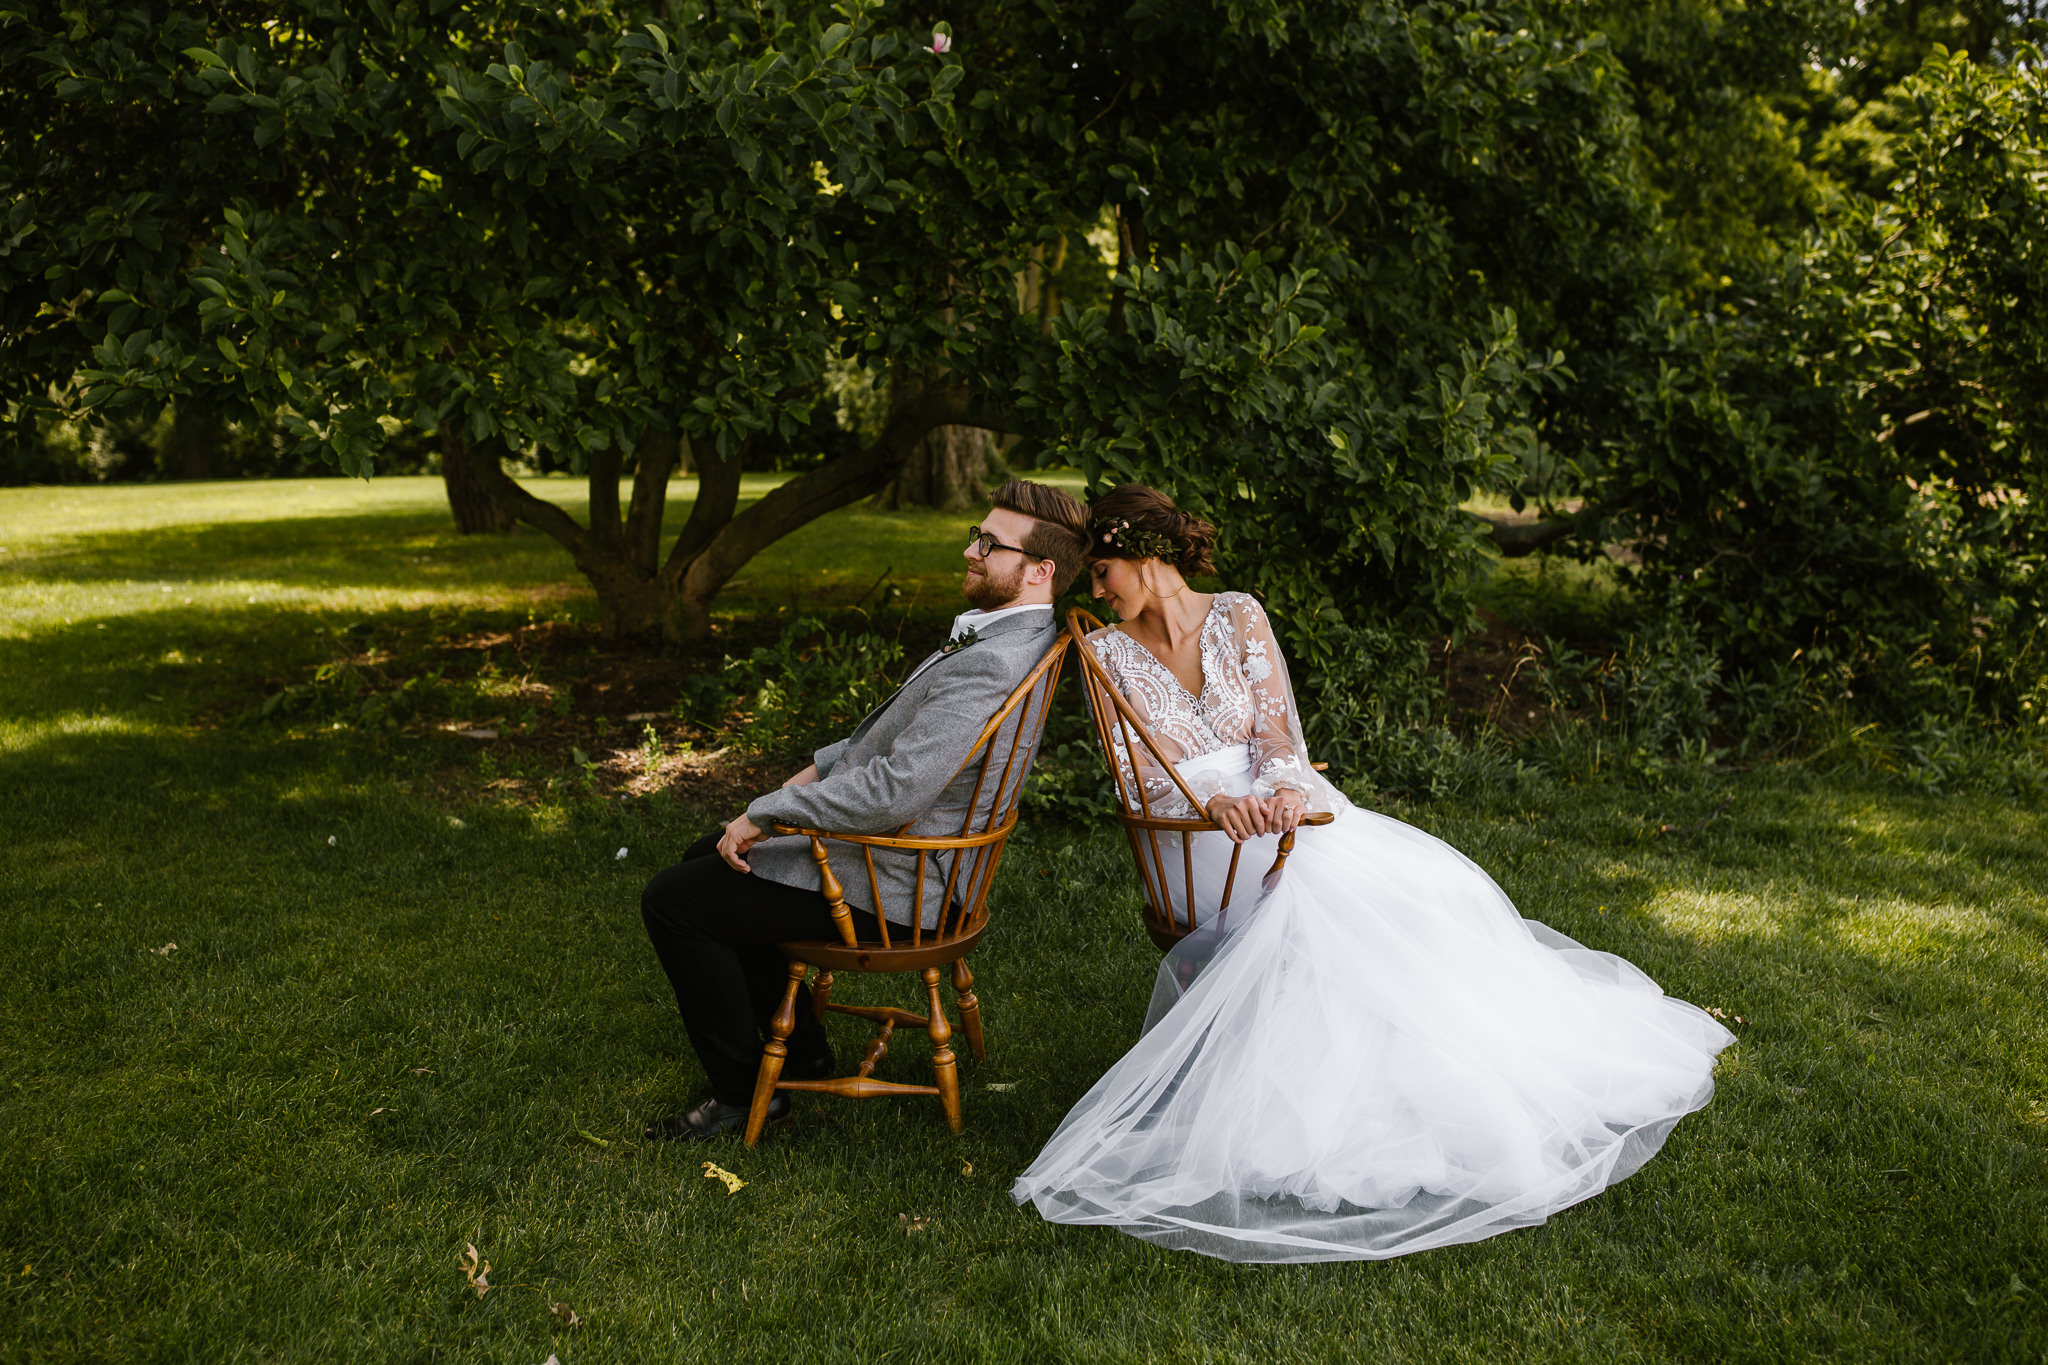 eastlyn and joshua findlay ohio wedding photographers bohemian outdoor wedding-66.jpg